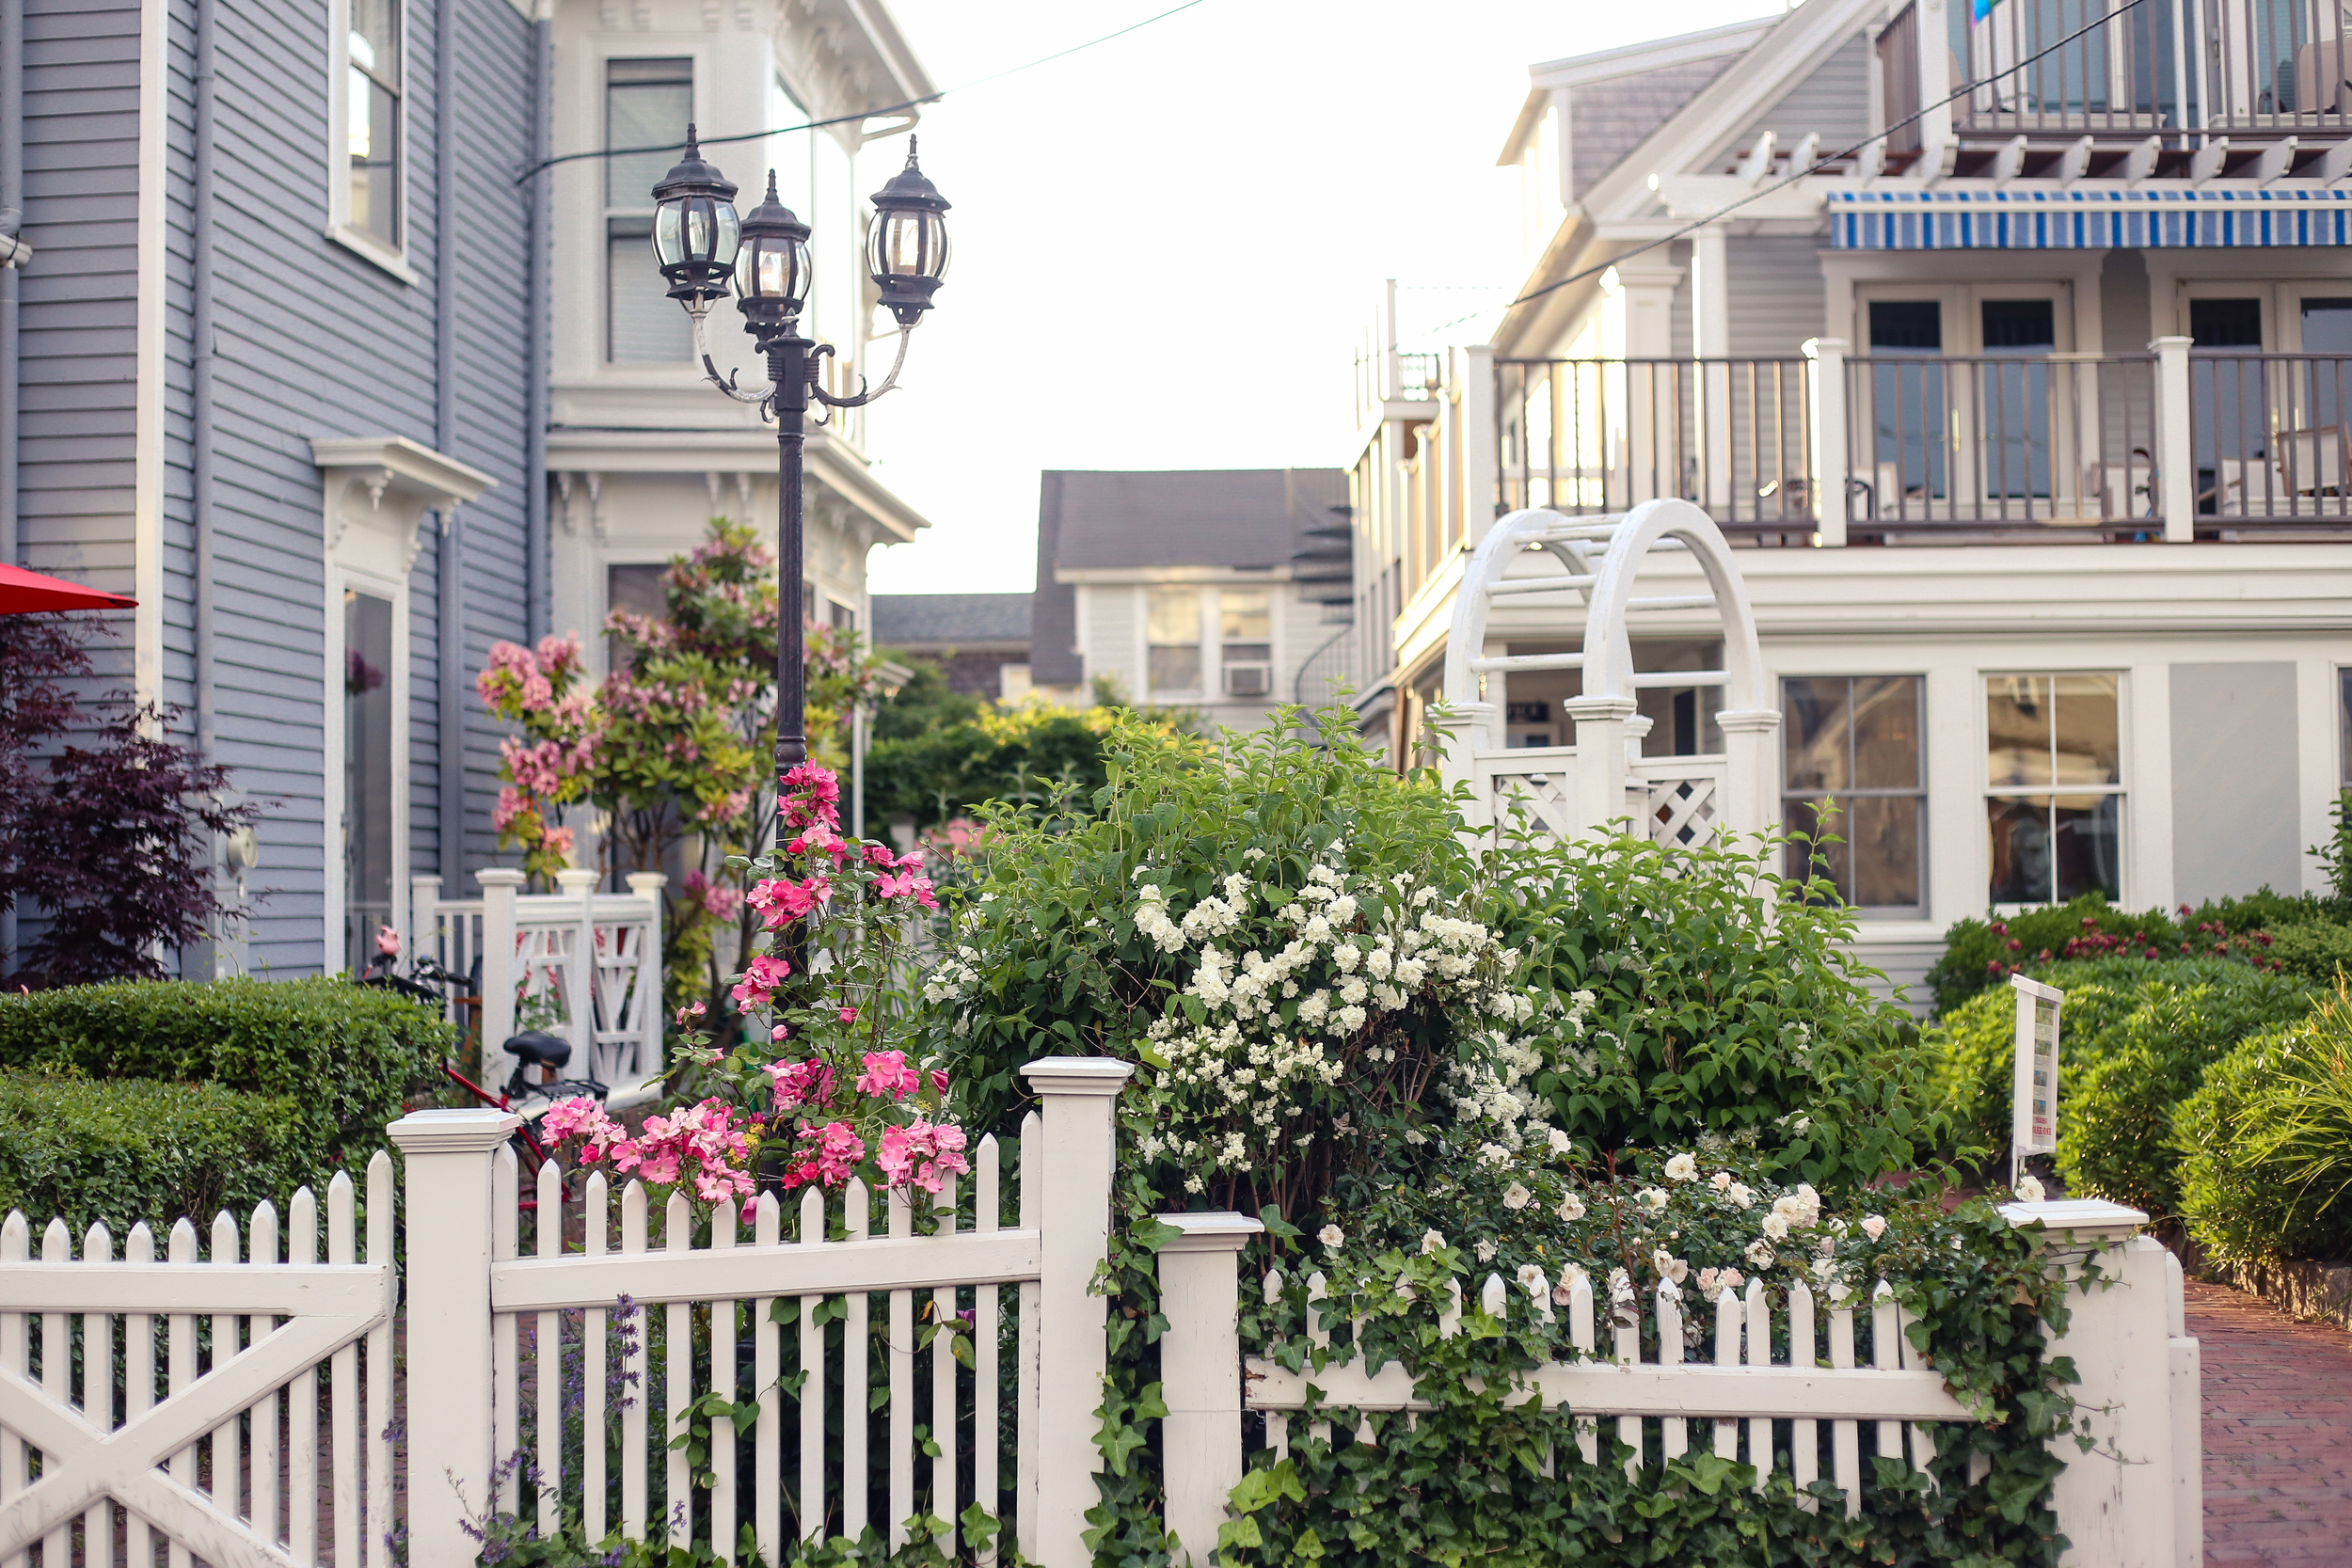 Cape Cod- Enchanting Elegance